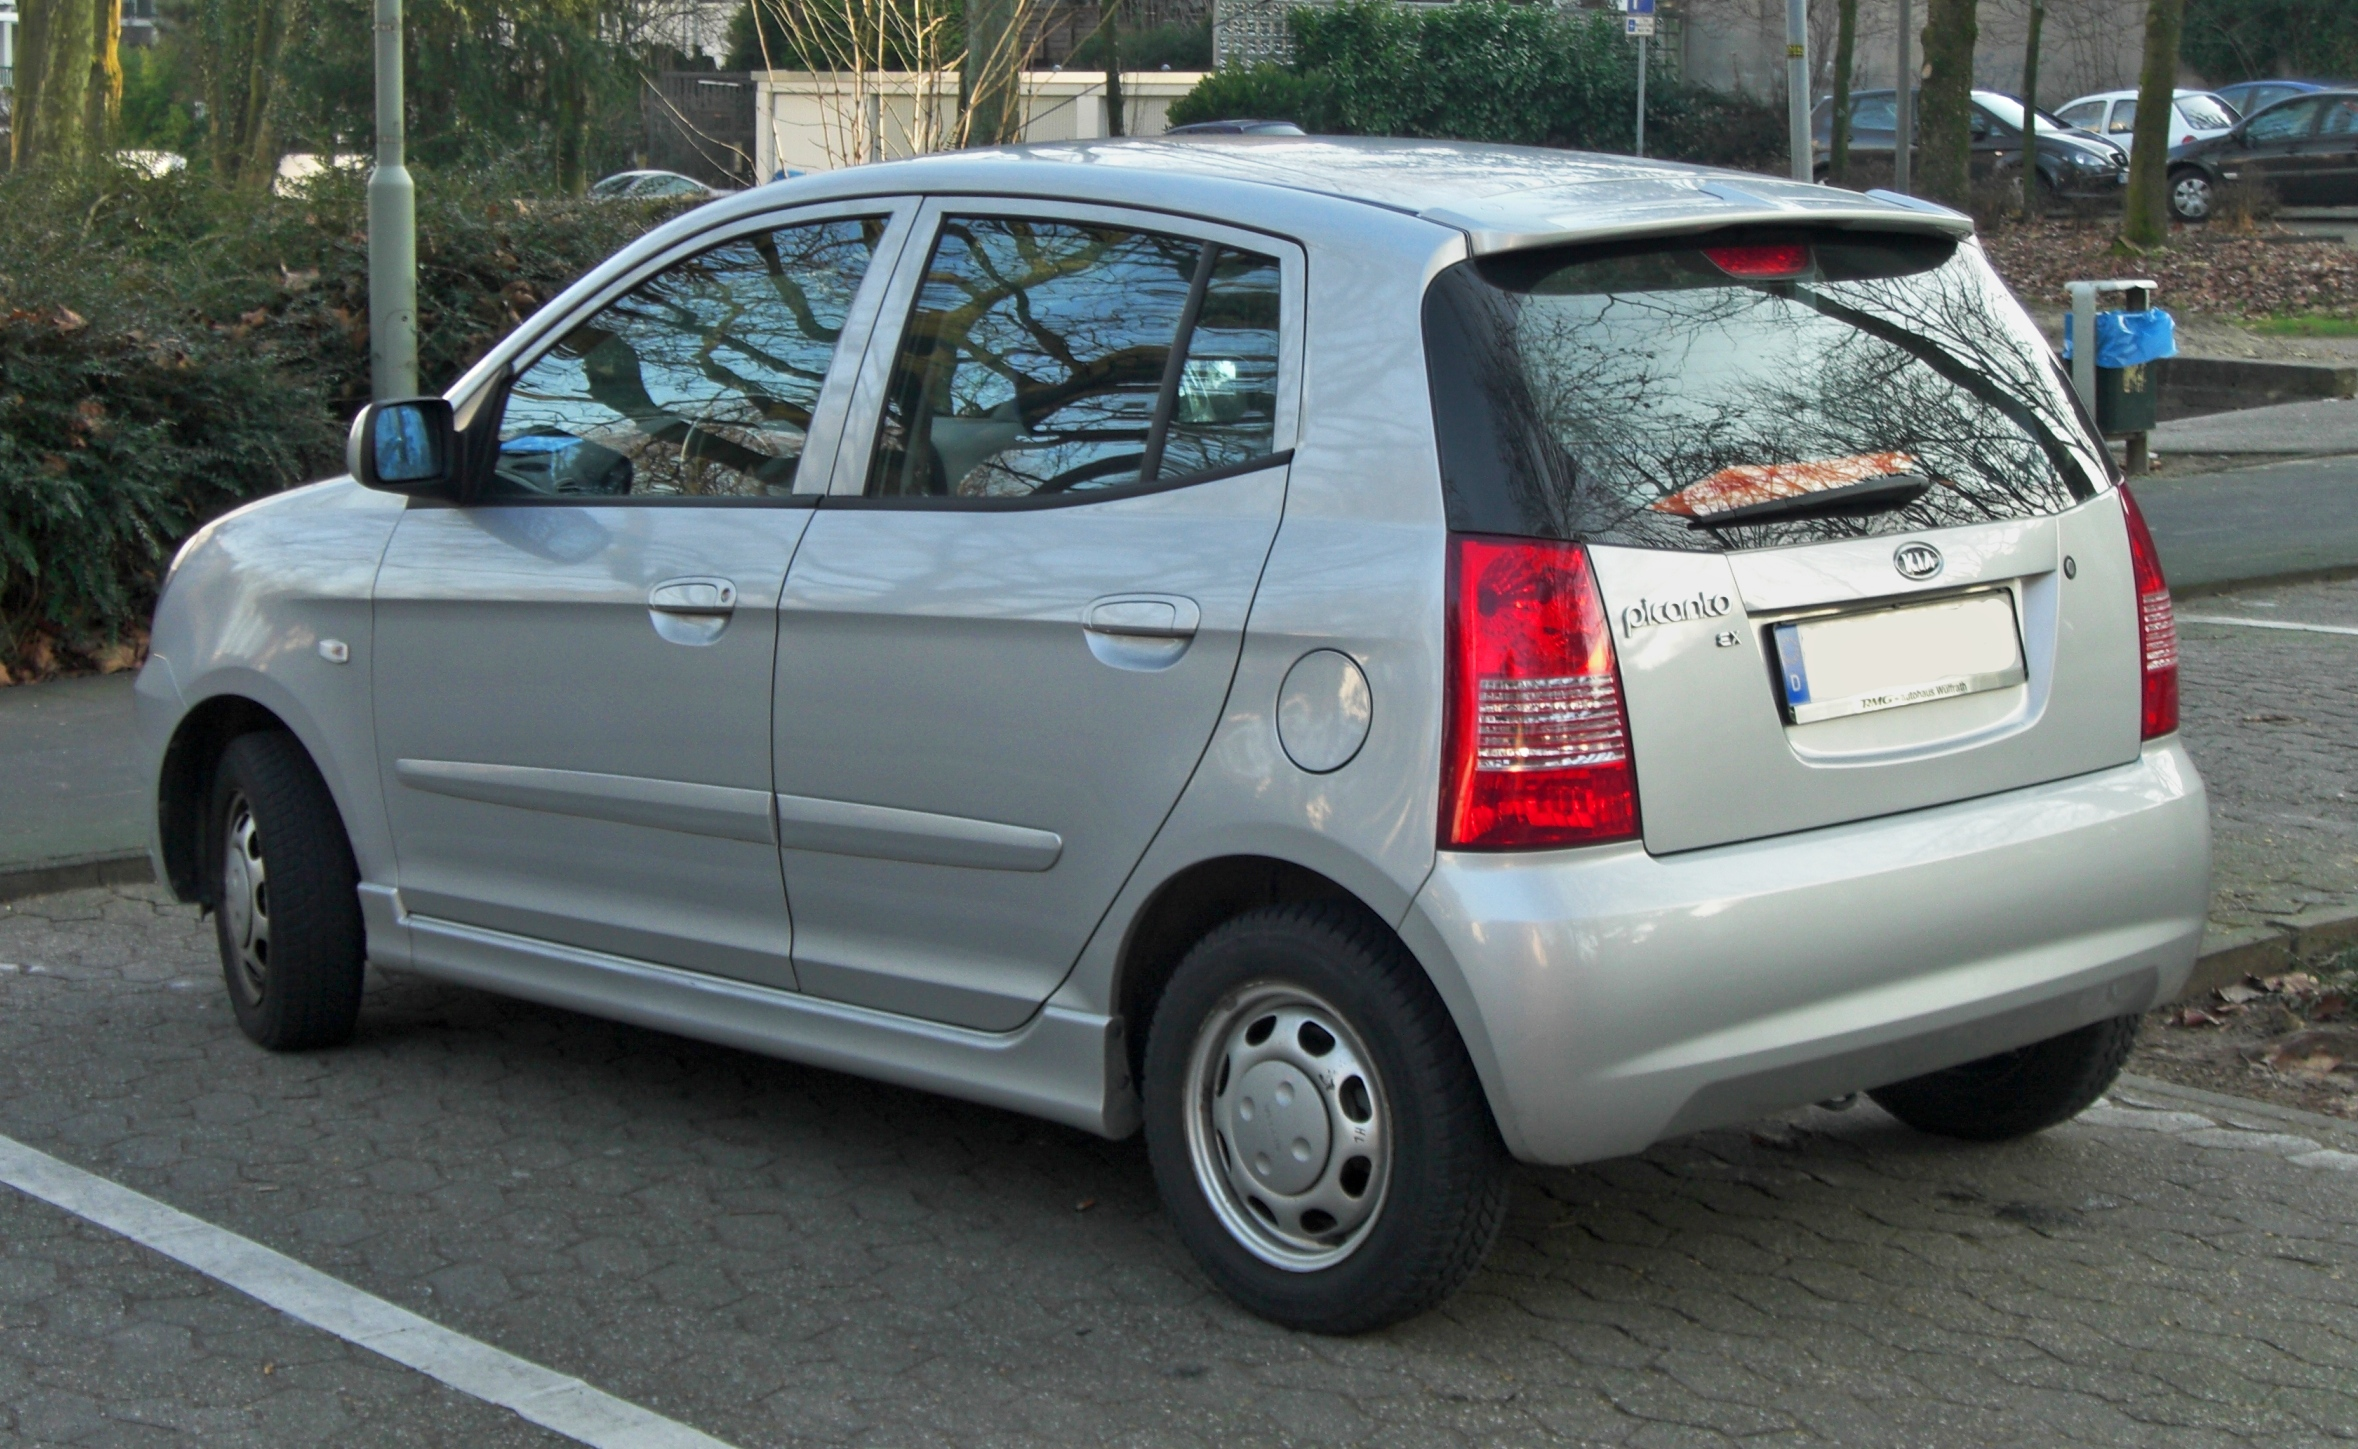 kia picanto 2009 review amazing pictures and images look at the car. Black Bedroom Furniture Sets. Home Design Ideas